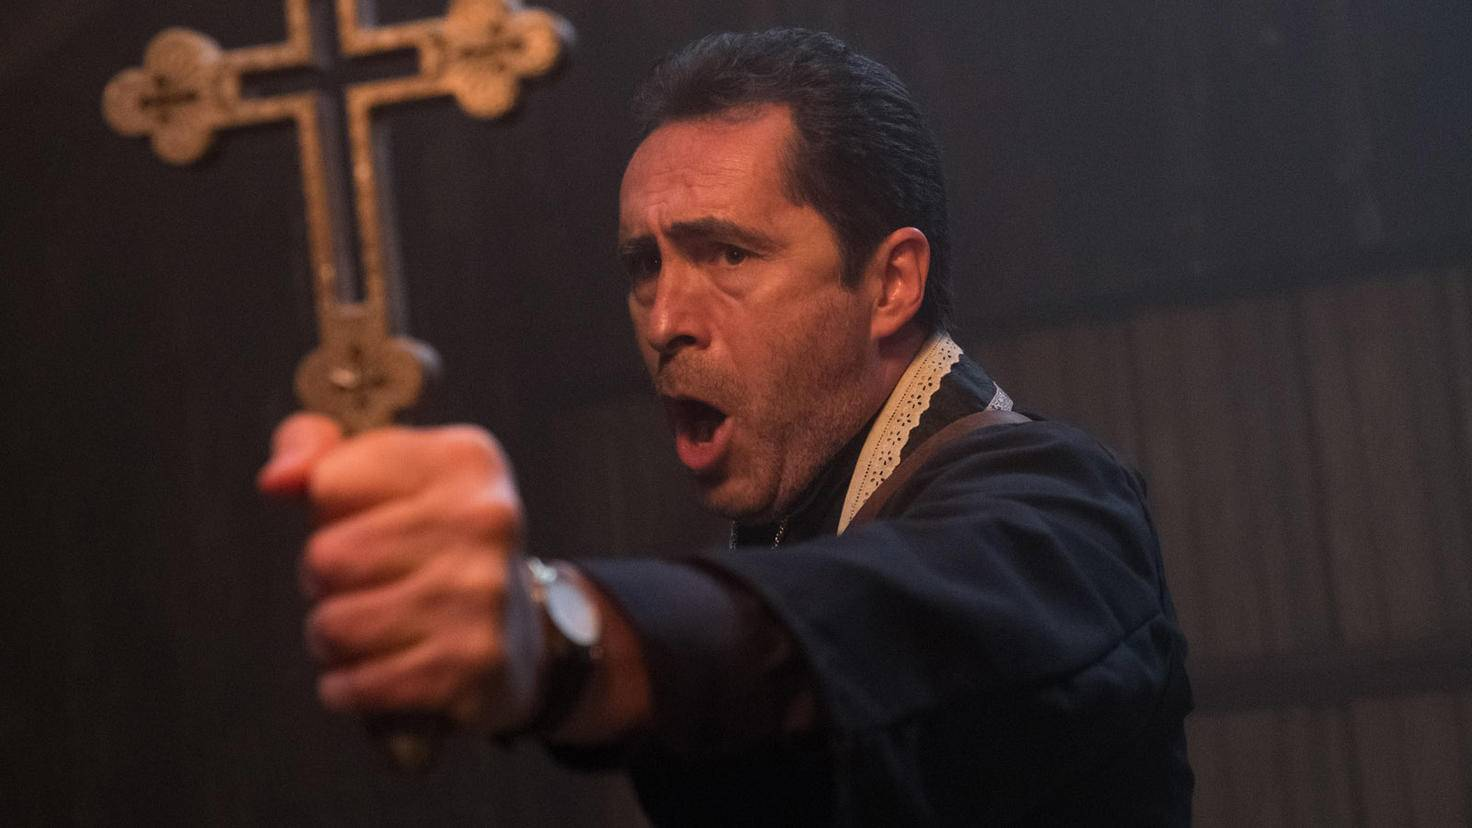 The Nun-Demian Bichir-Father Burke-Justin Use-Courtesy of Warner Bros Pictures